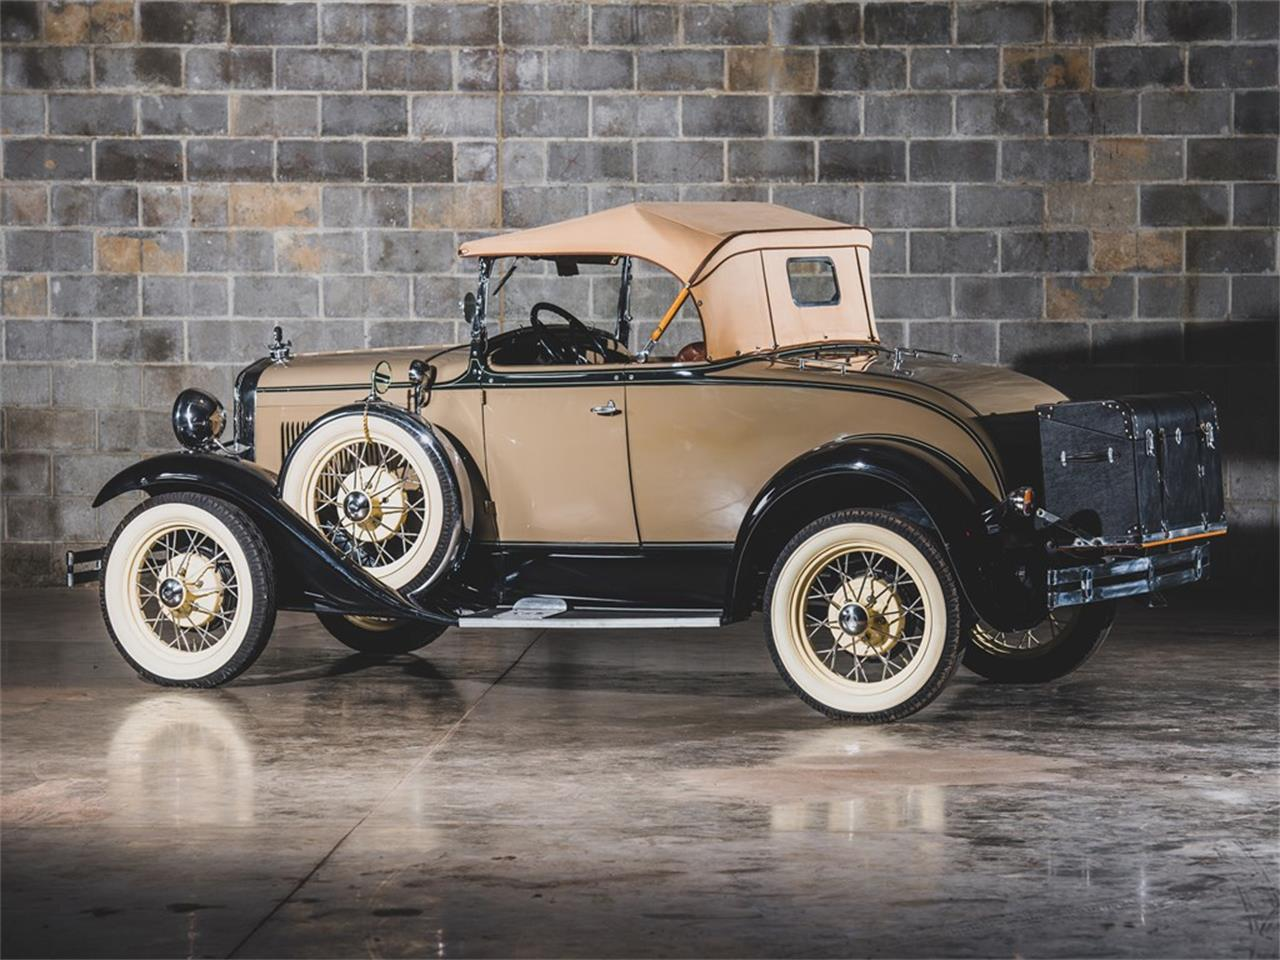 Large Picture of Classic '30 Model A DeLuxe Roadster located in Missouri Auction Vehicle Offered by RM Sotheby's - PMMS